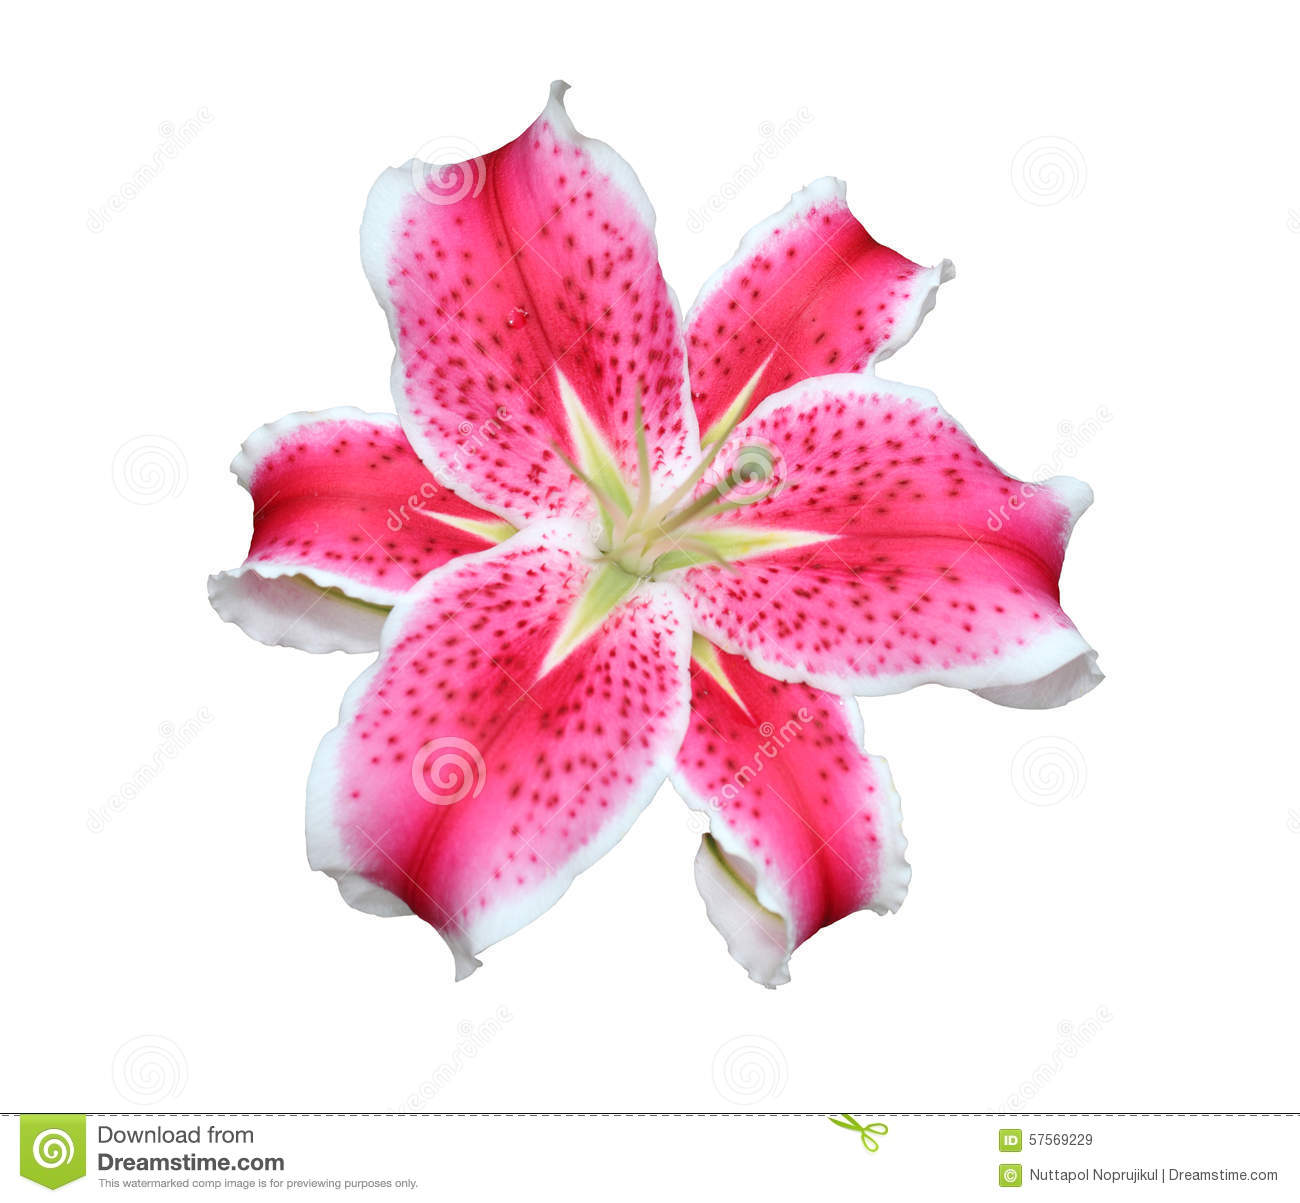 Pink Stargazer Lilies Flowers On White Background. Stock Photo.